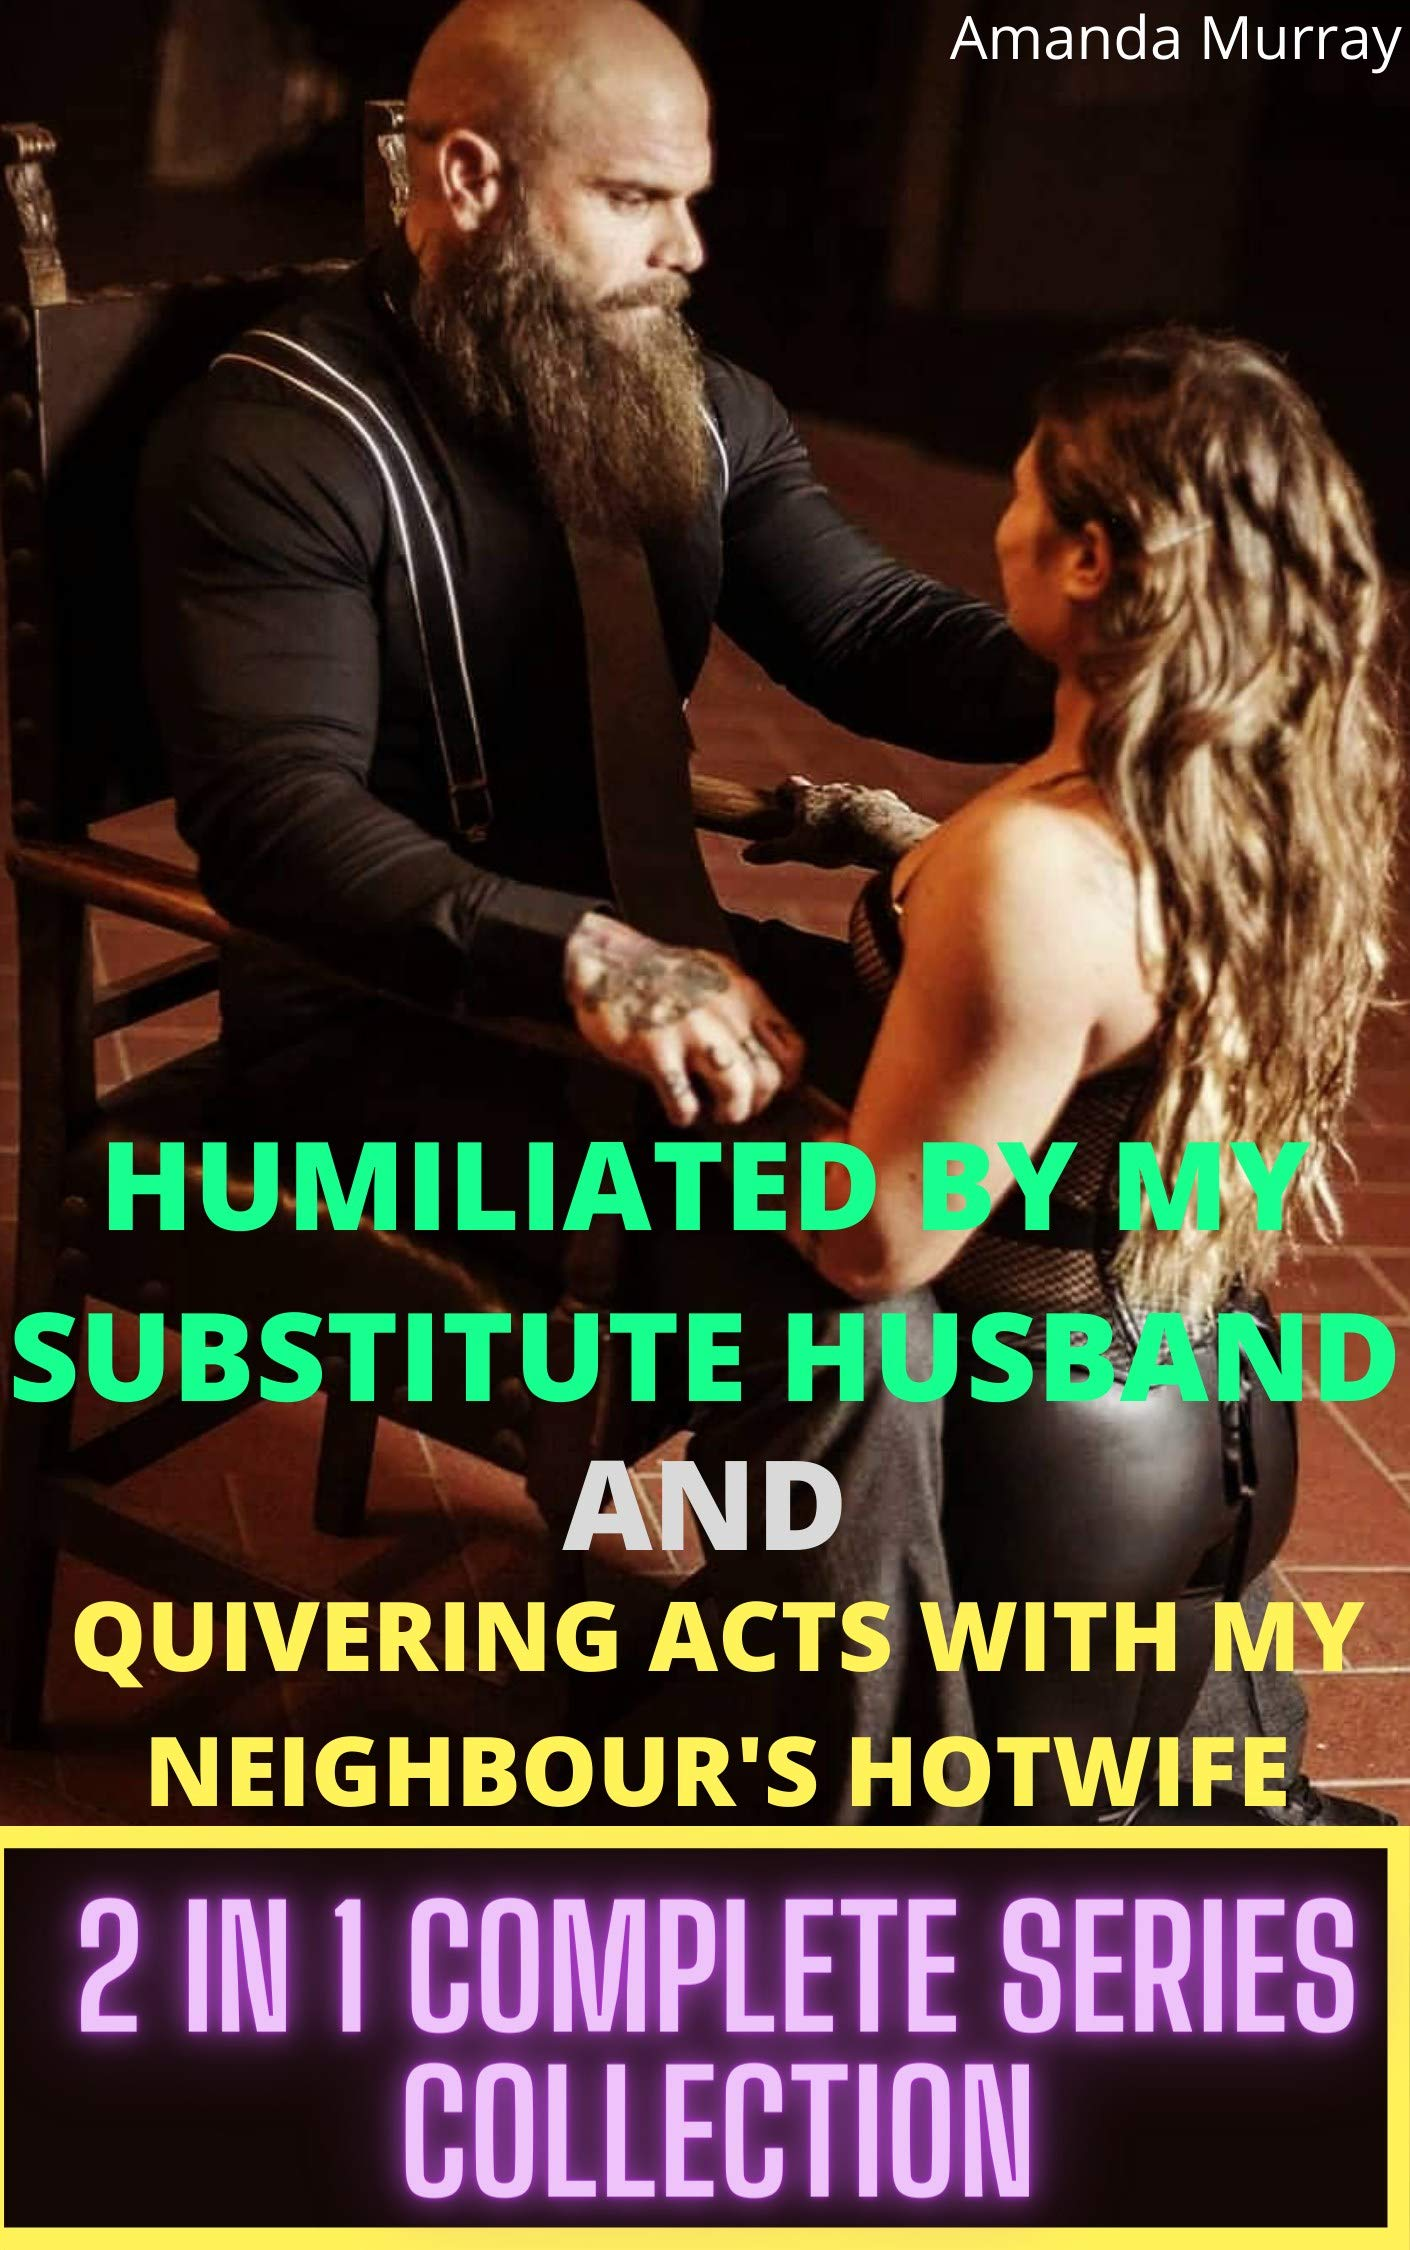 Humiliated And Dominated By My Substitute Husband And Quivering Acts With My Neighbour's Hotwife 2 in 1 Complete Series Collection: ( 2in1 taboo erotcia with spanking submission pleasure and pain )